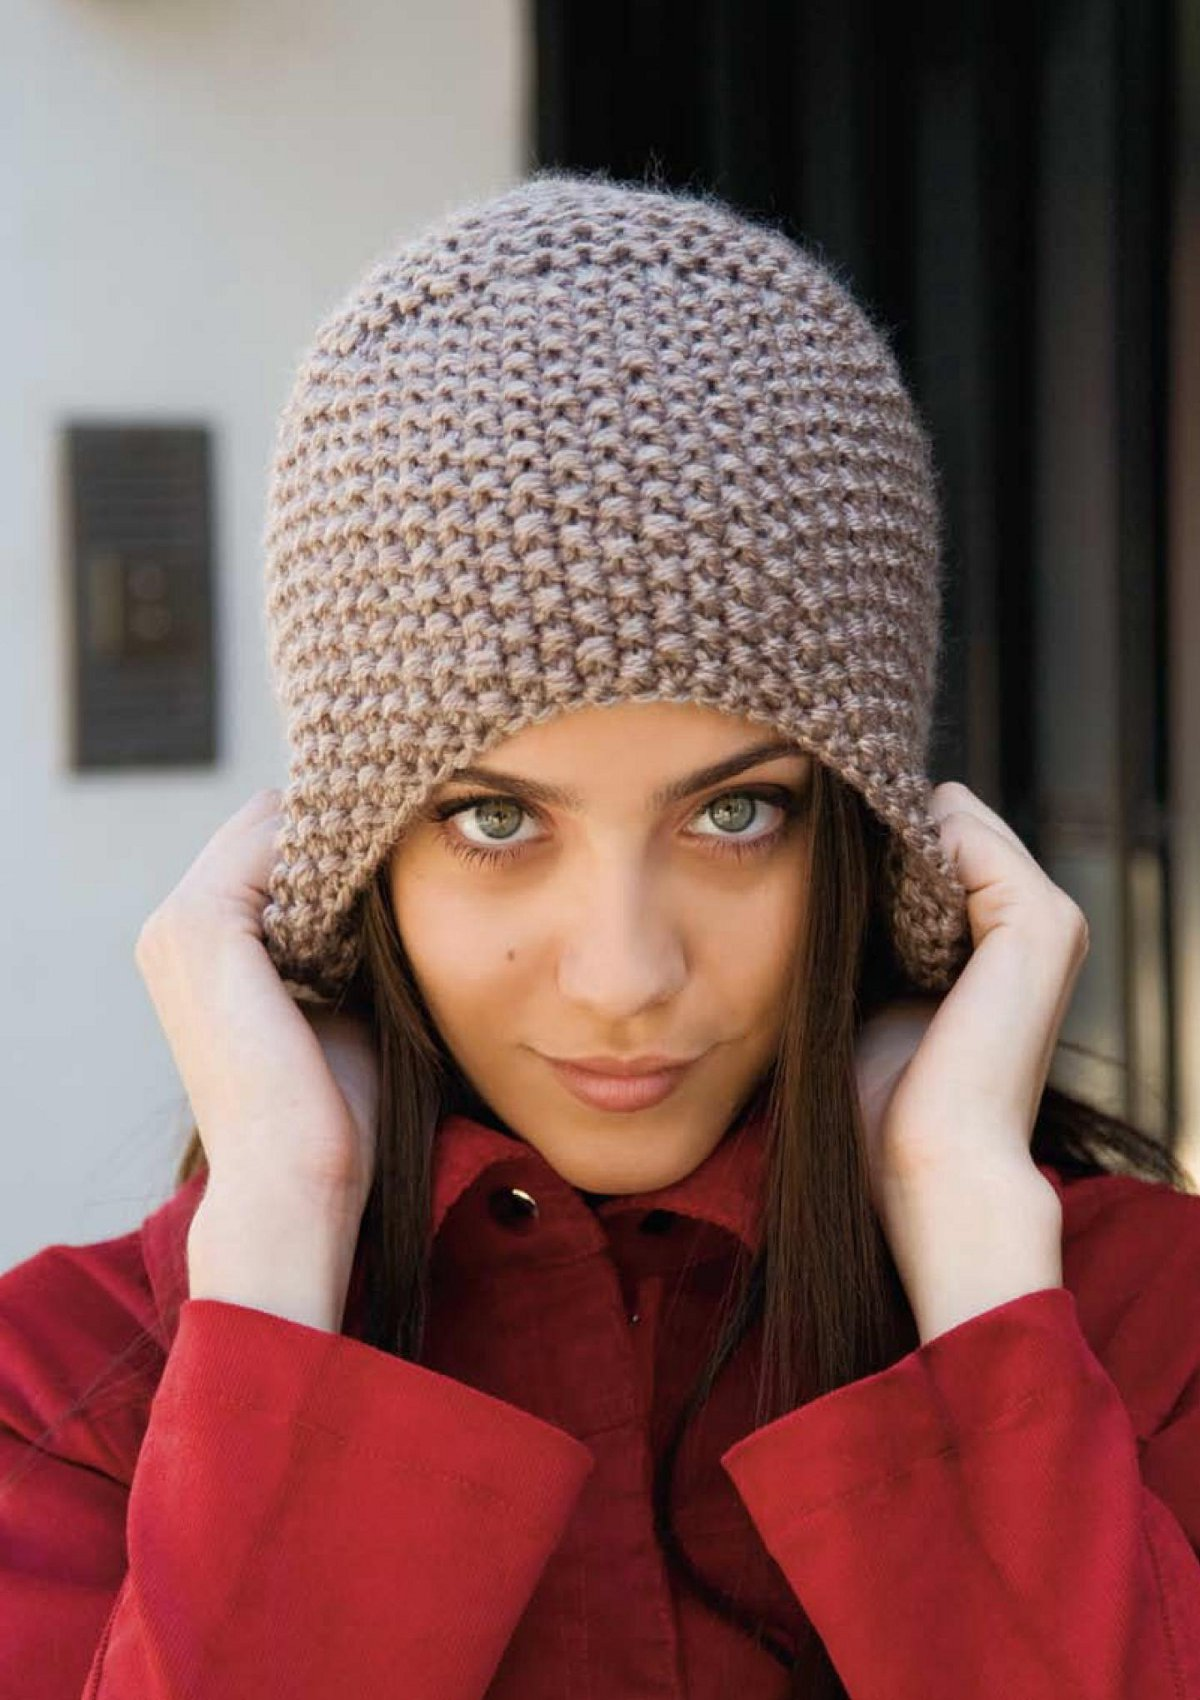 http://vjazhi.ru/images/stories/Nube/2010/10/Gorro.jpg